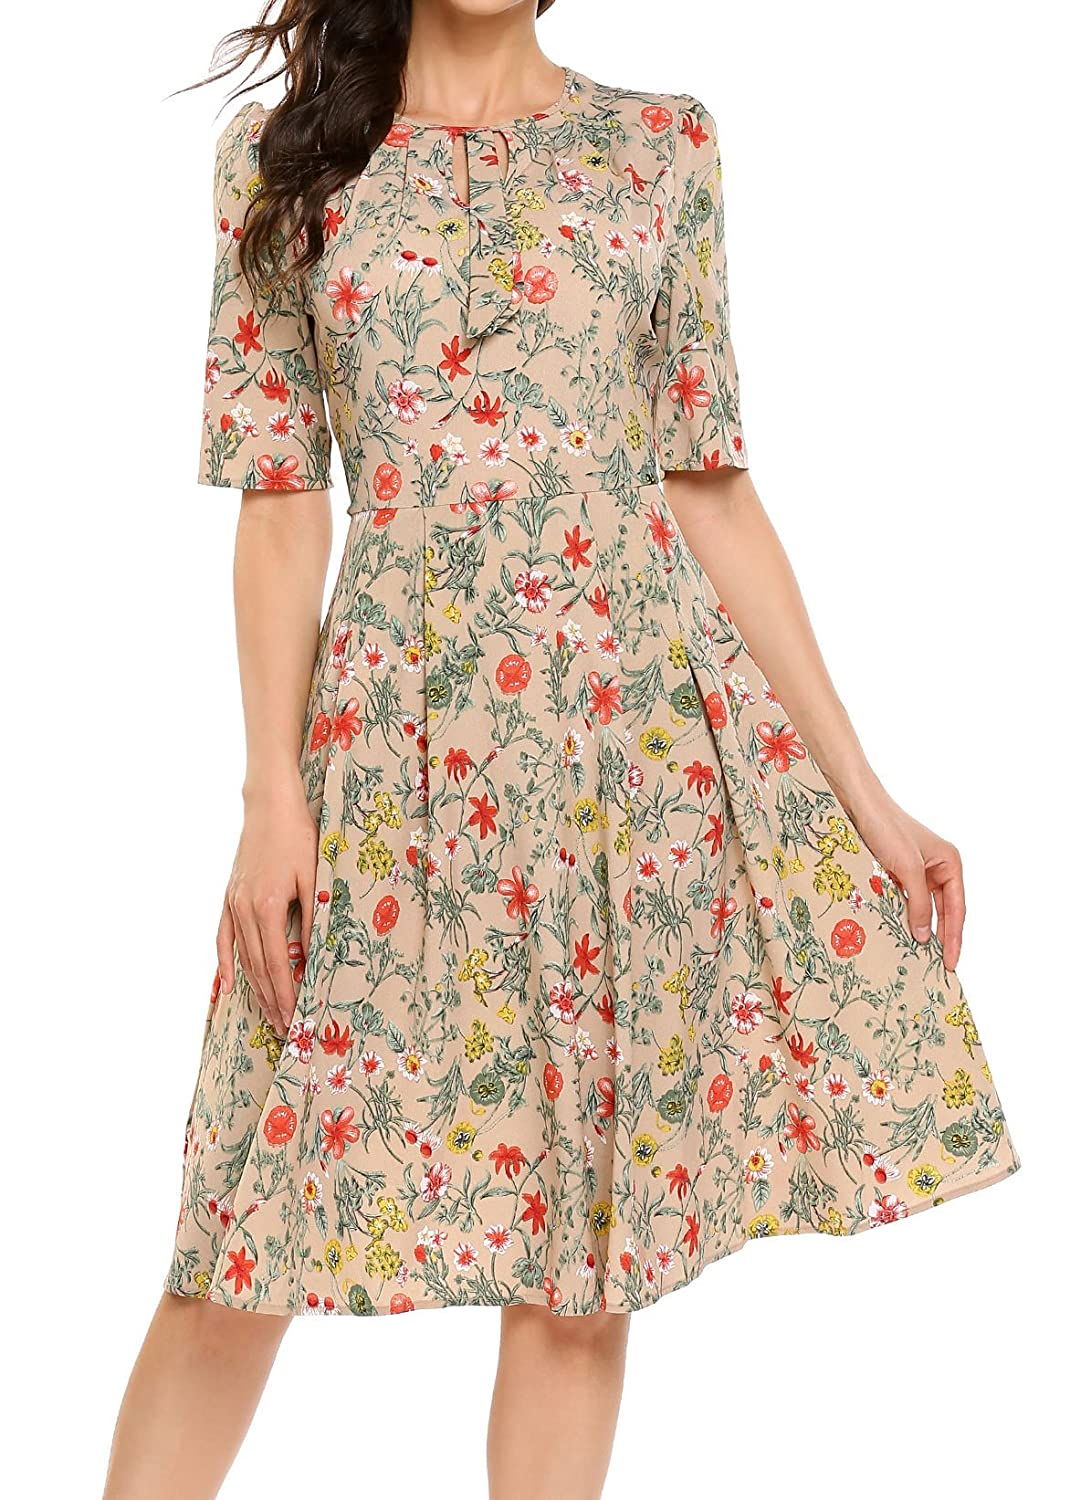 1940s Tea Dresses, Mature, Mrs. Long Sleeve Dresses Casual Short Sleeve Floral Printed Fit and Flare Party Dress ACEVOG Womens $30.79 AT vintagedancer.com